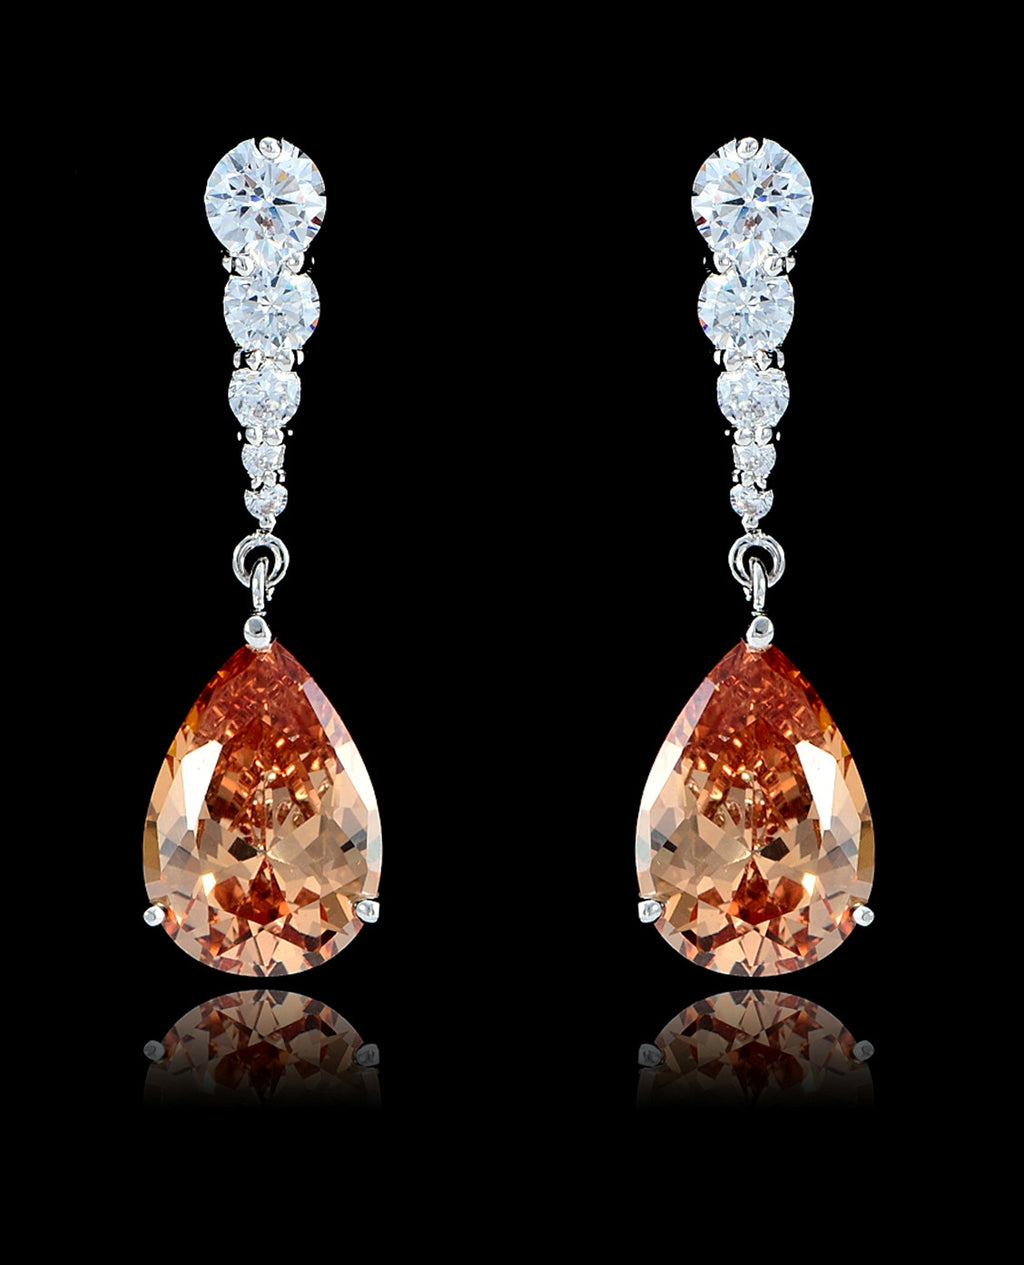 Light Peach Cubic Zirconia Teardrop Earrings - Bedazzled By Jeanelle - 1